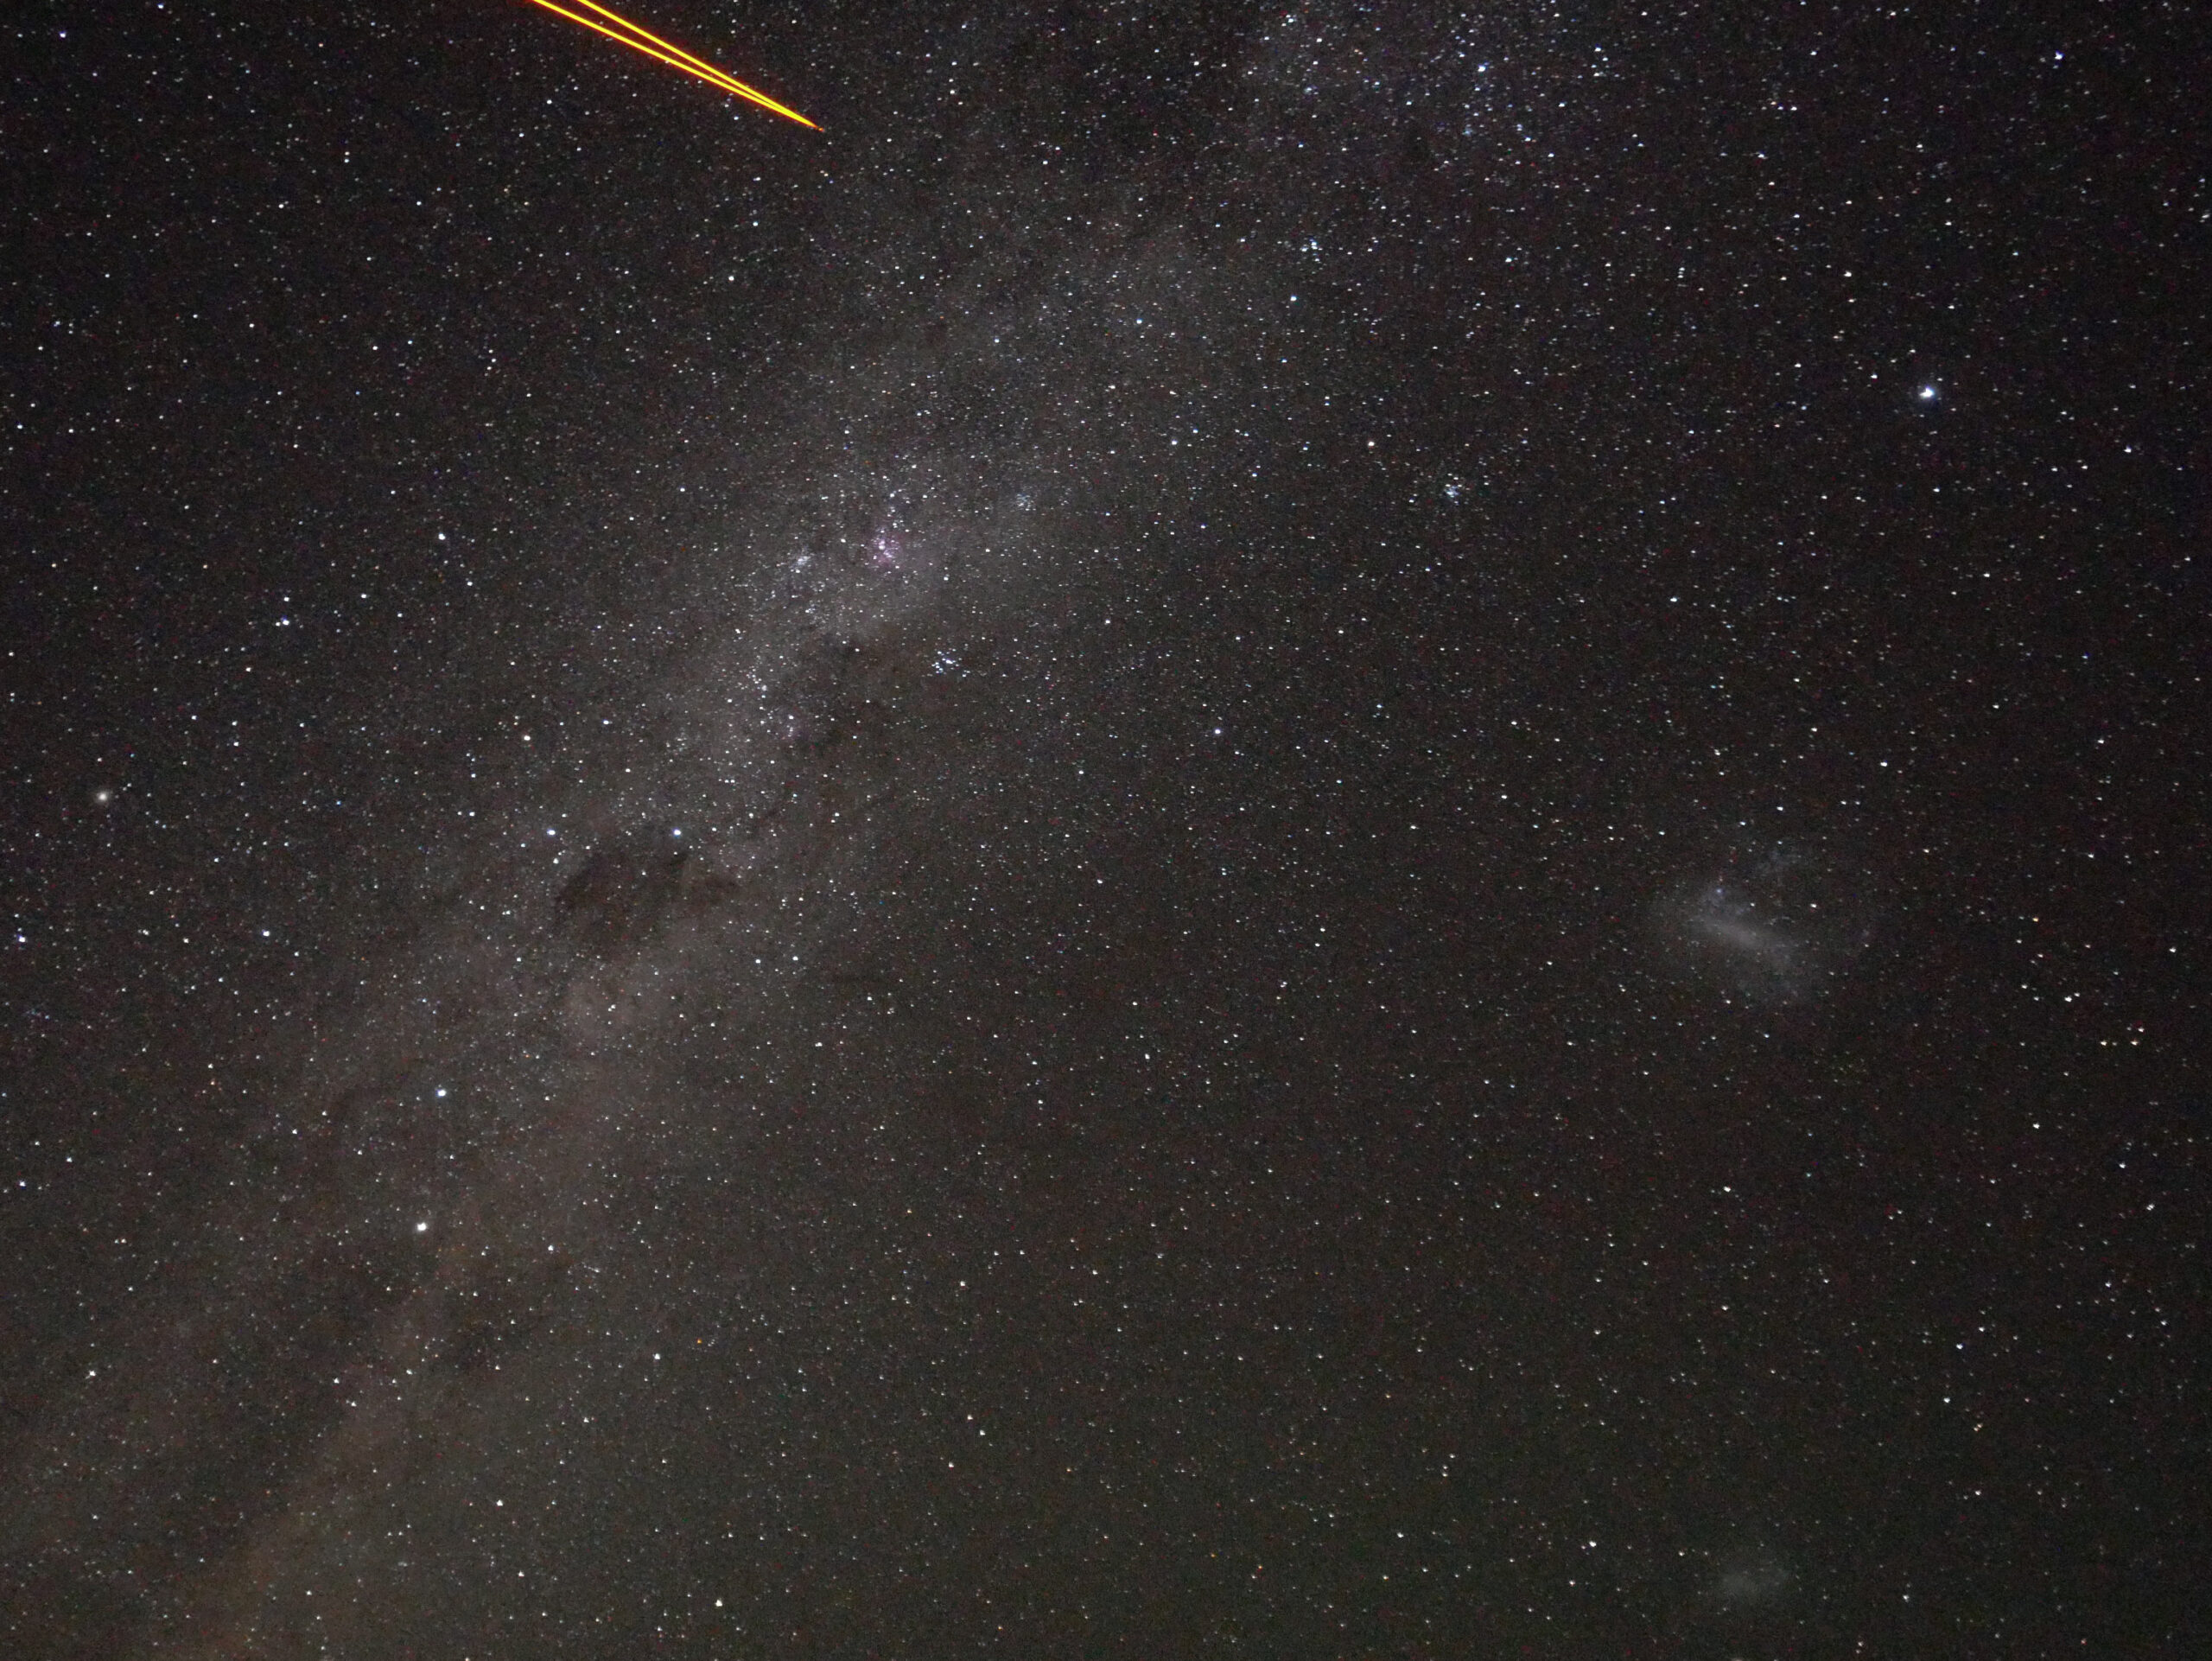 Observing at the paranal observatory in Chile